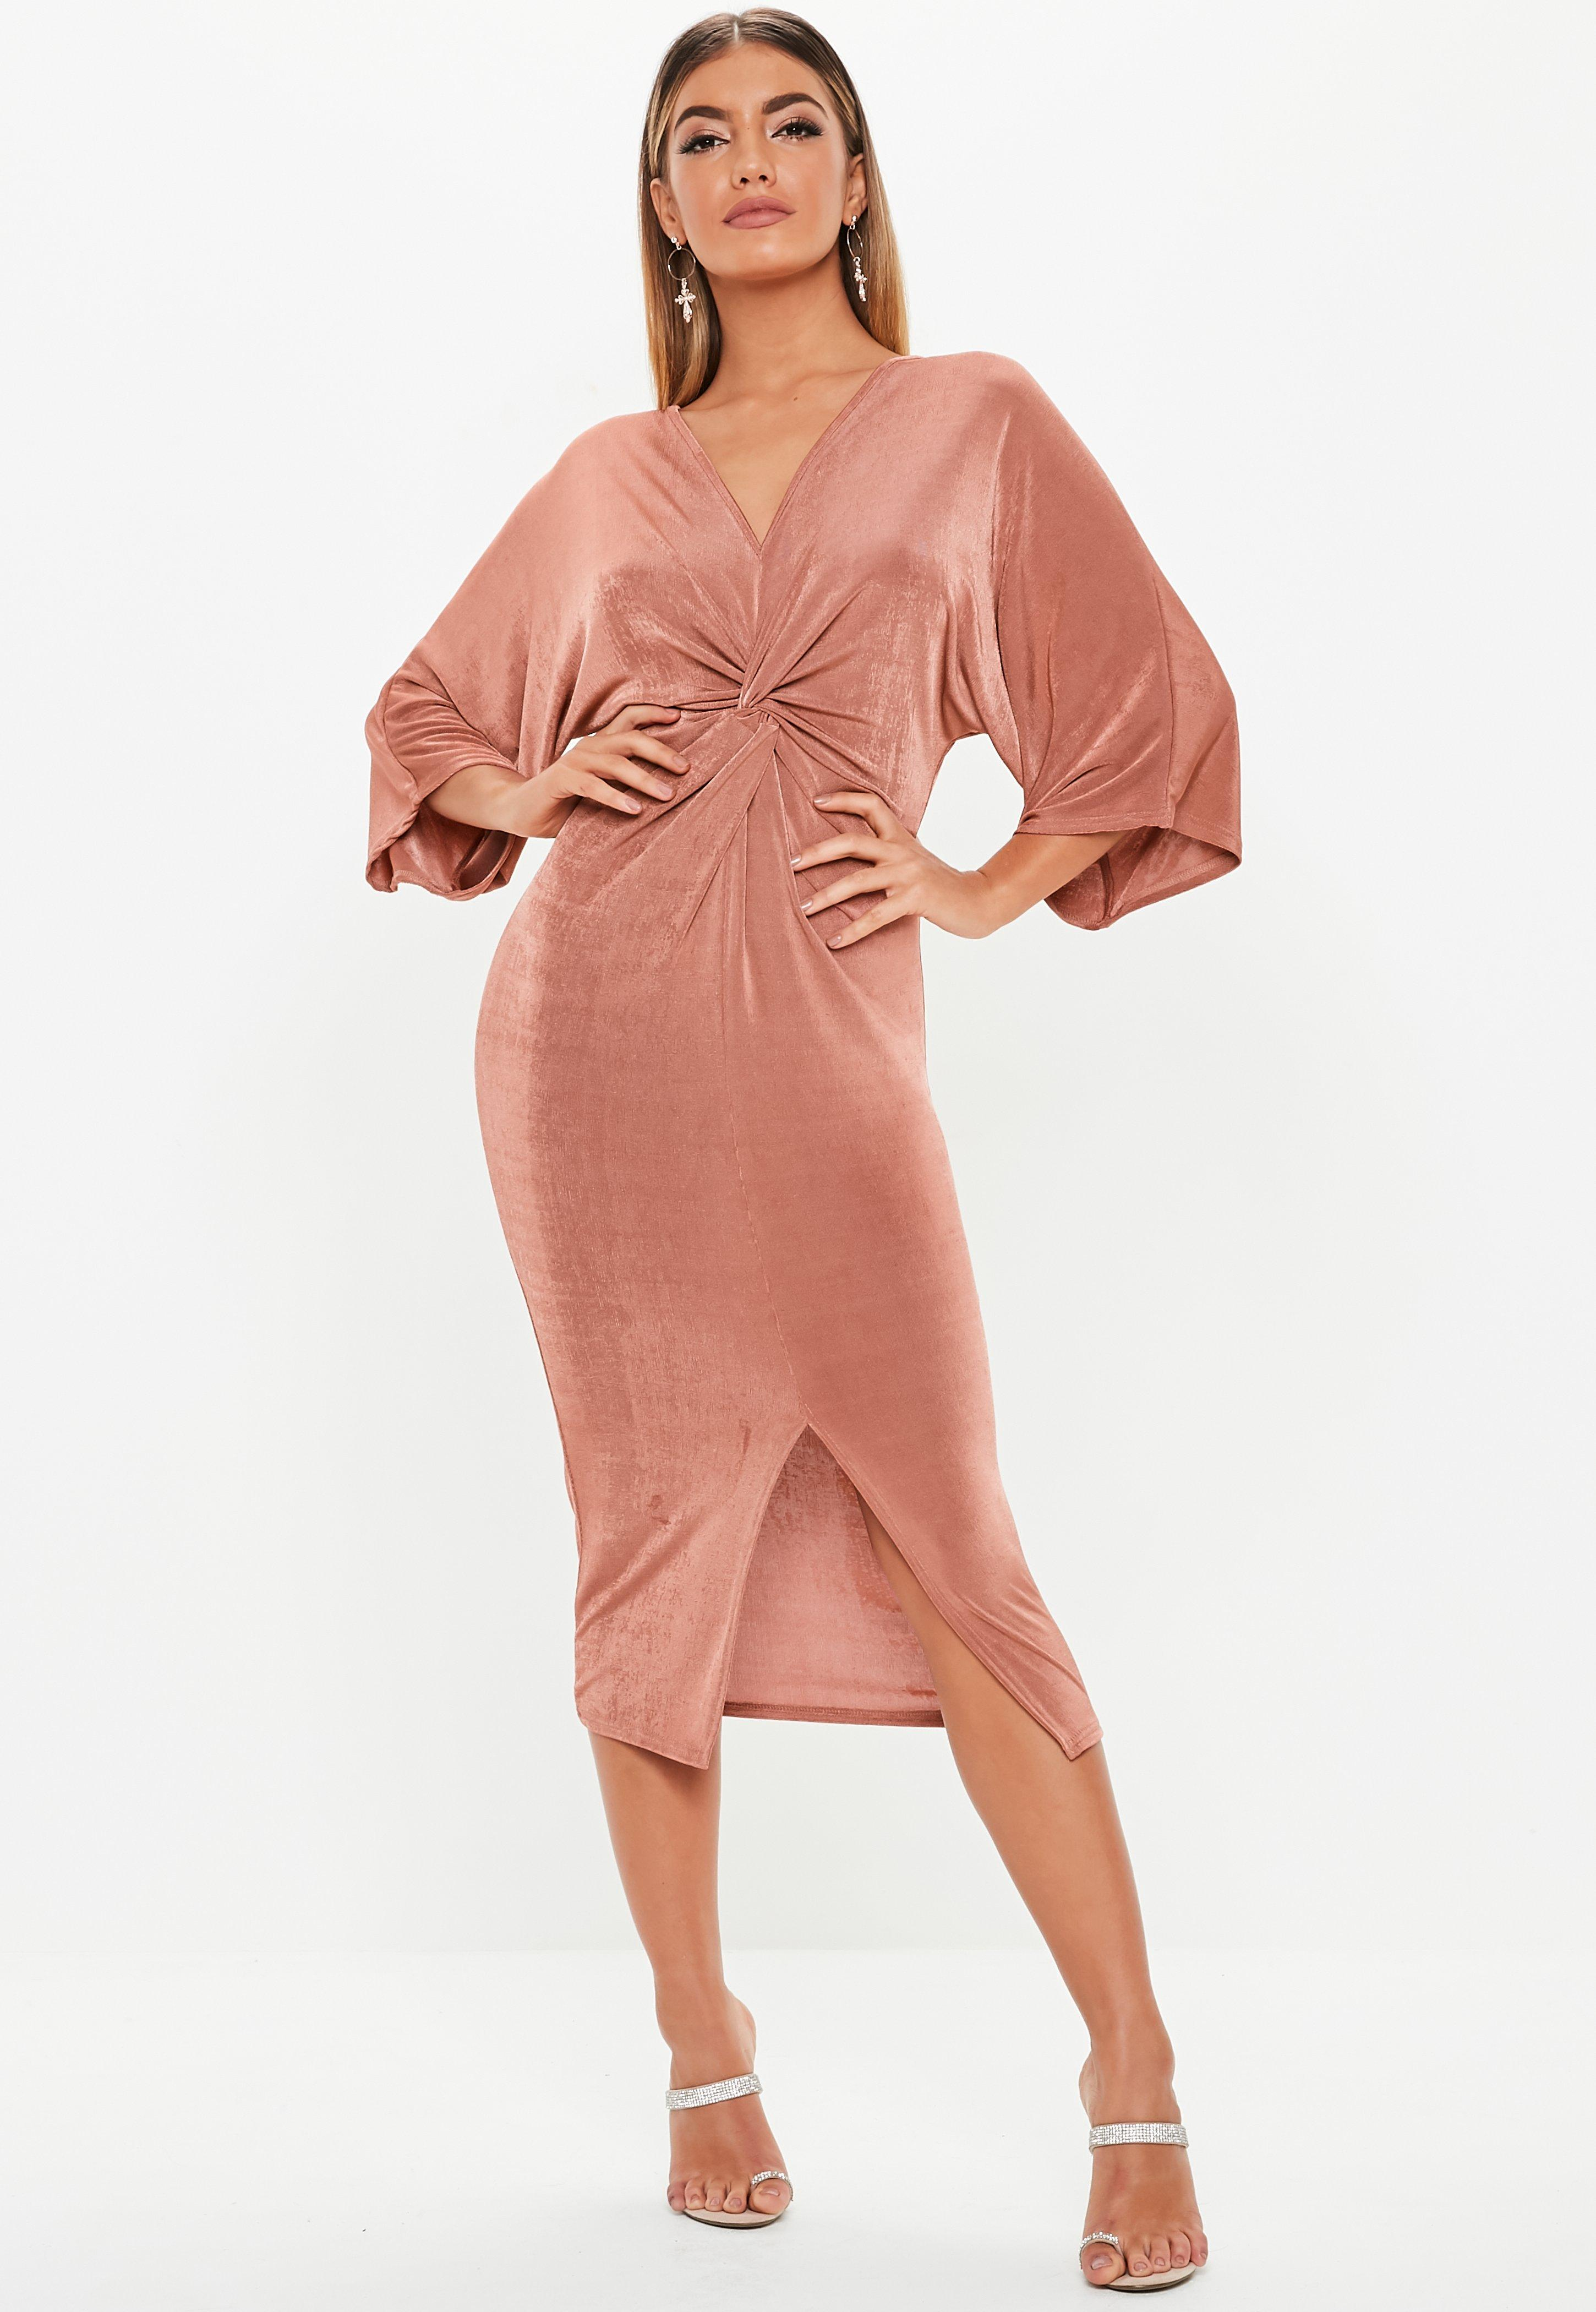 Robe moulante   Robe moulante sexy - Missguided 81d68f851ef2